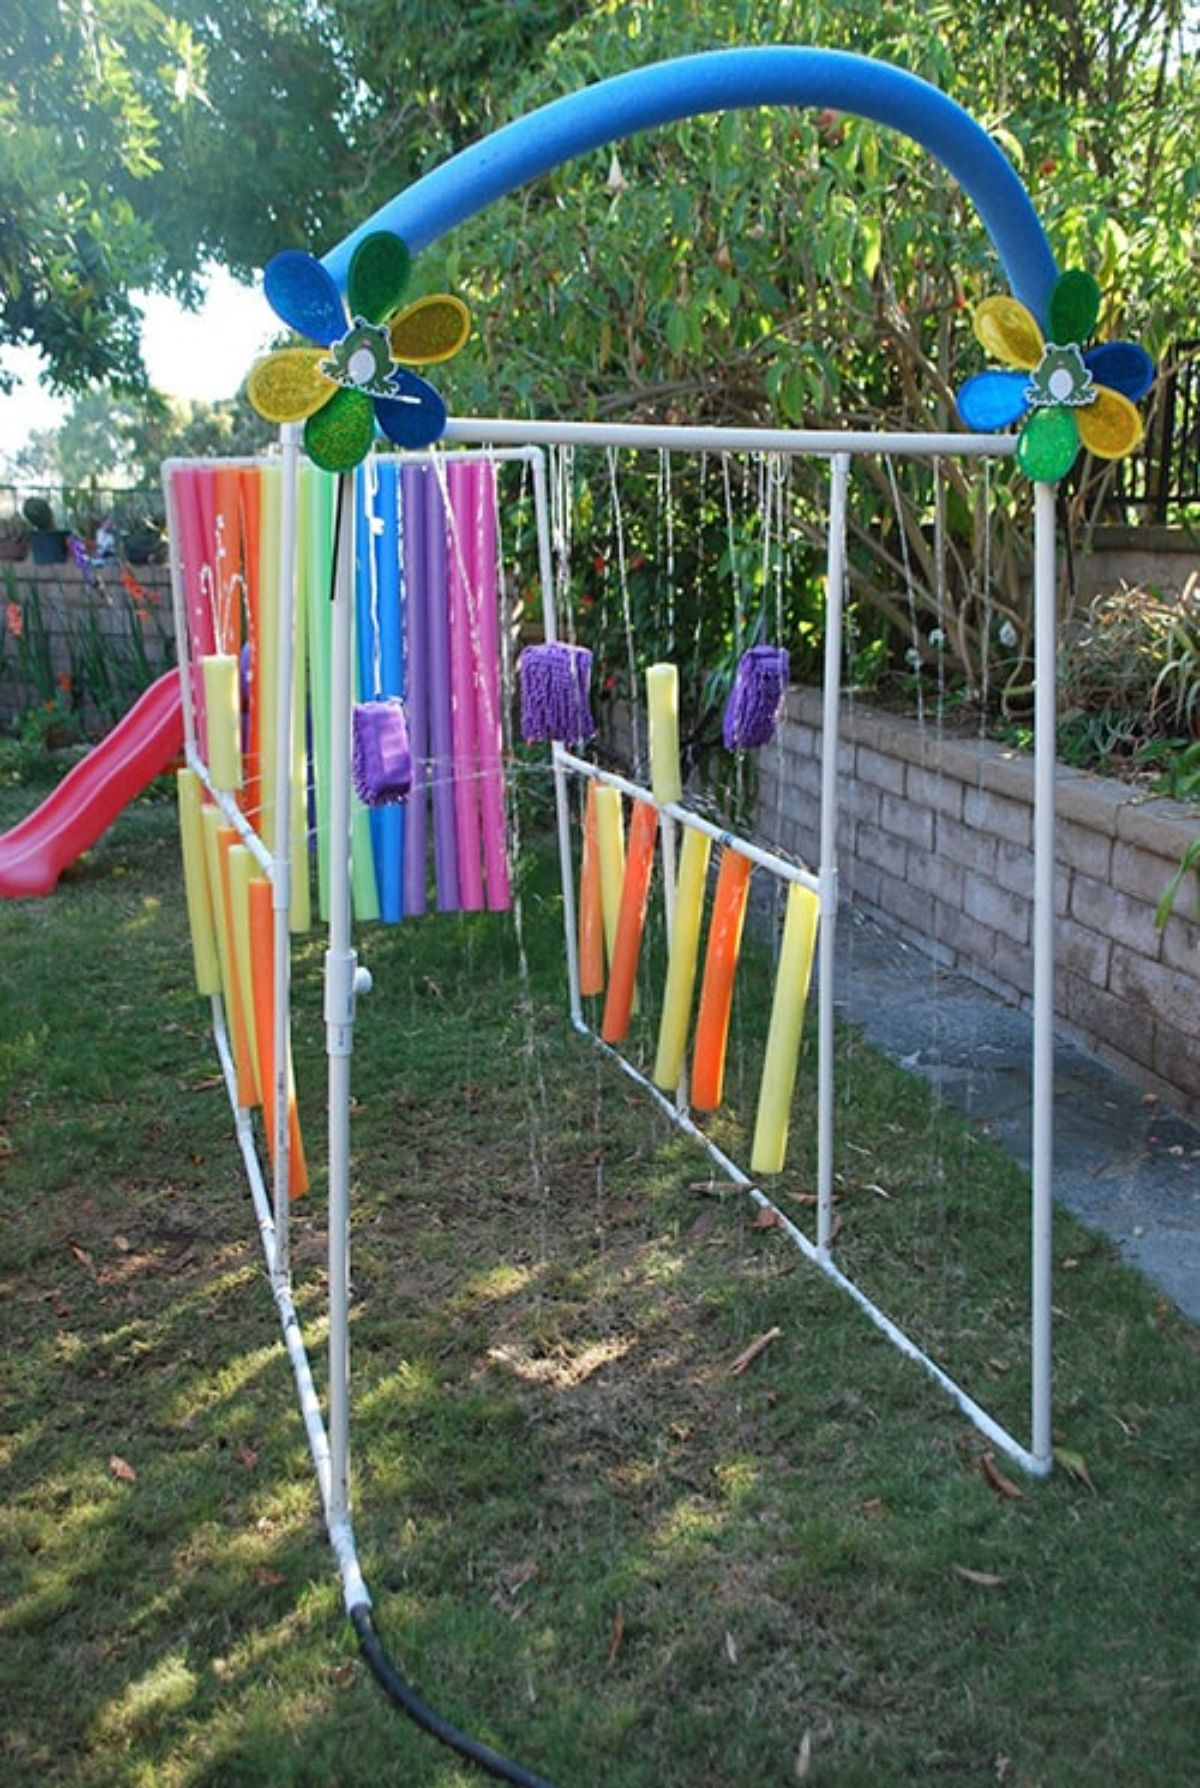 Standing on grass is a white tubular structure with pool boodles hanging from it like a car wash